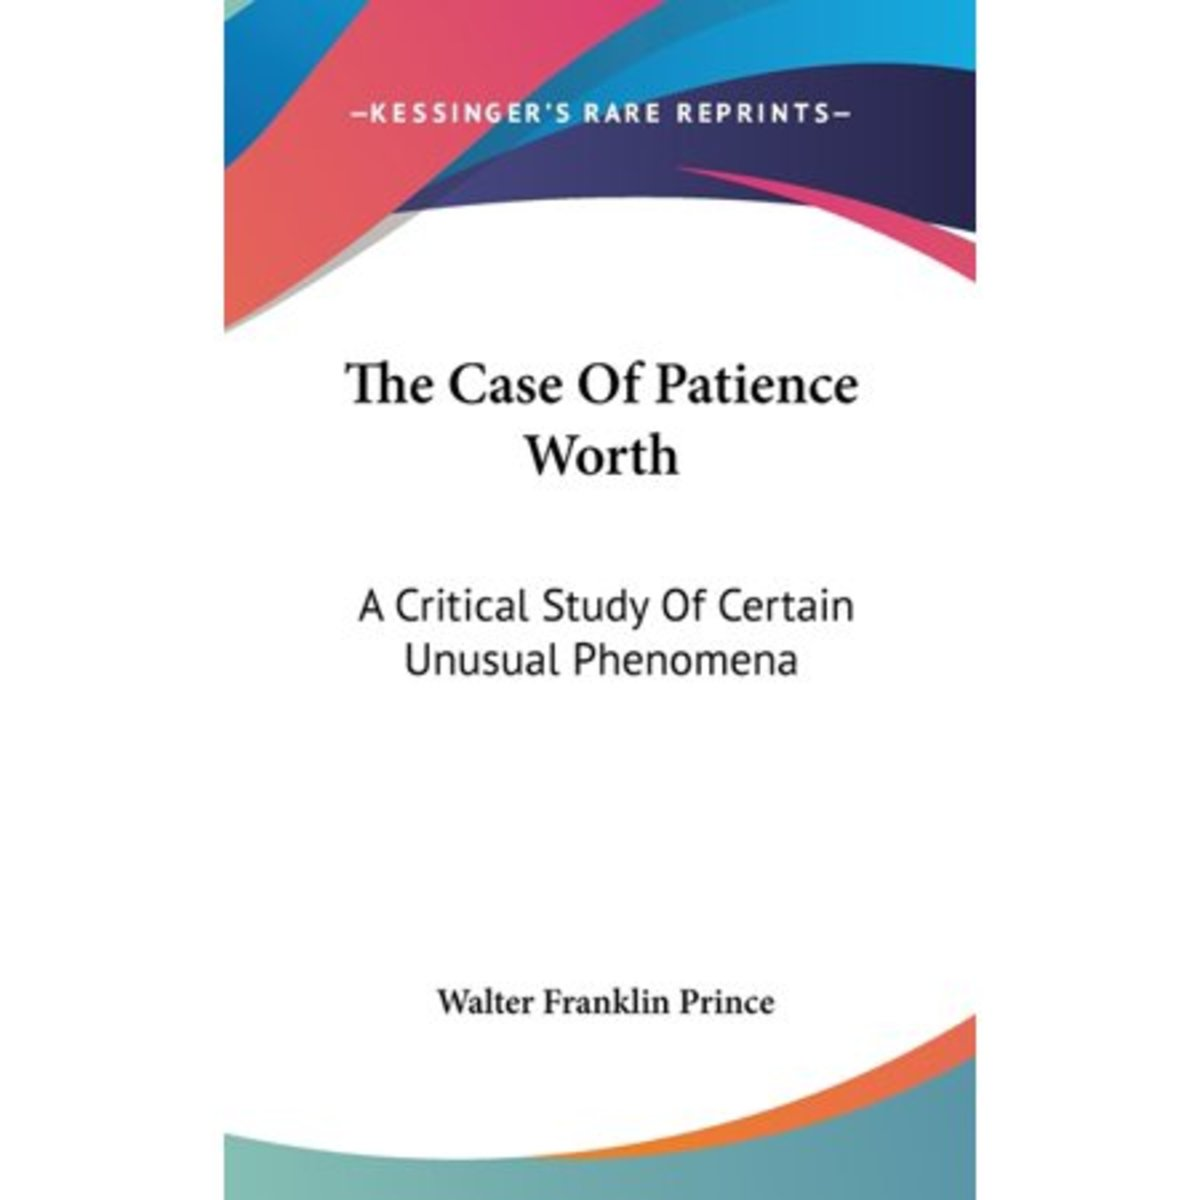 The Case of Patience Worth by Walter Franklin Prince